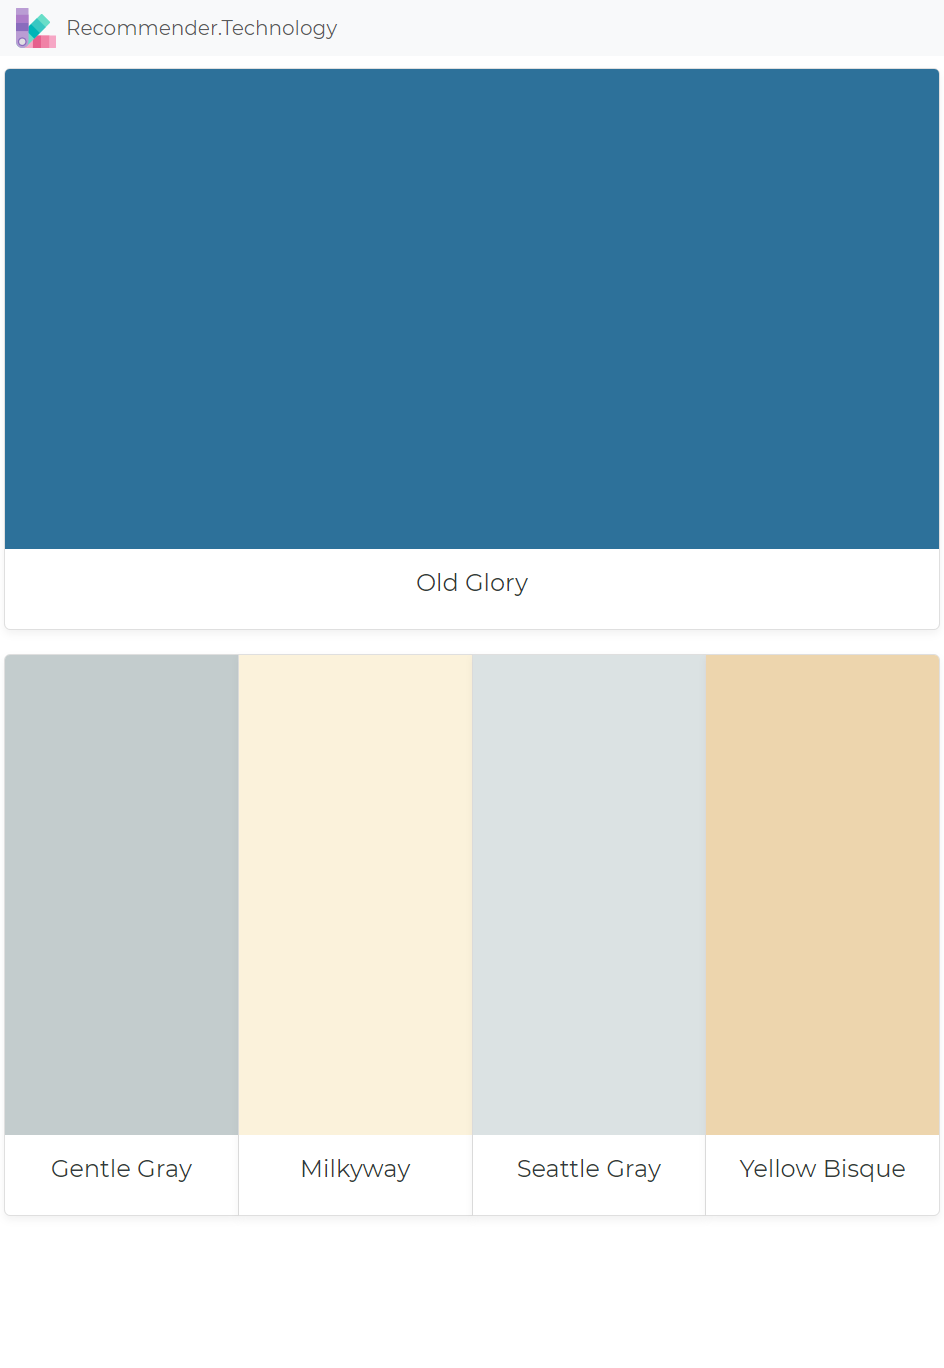 Old Glory Gentle Gray Milkyway Seattle Yellow Bisque Paint Color Palettes